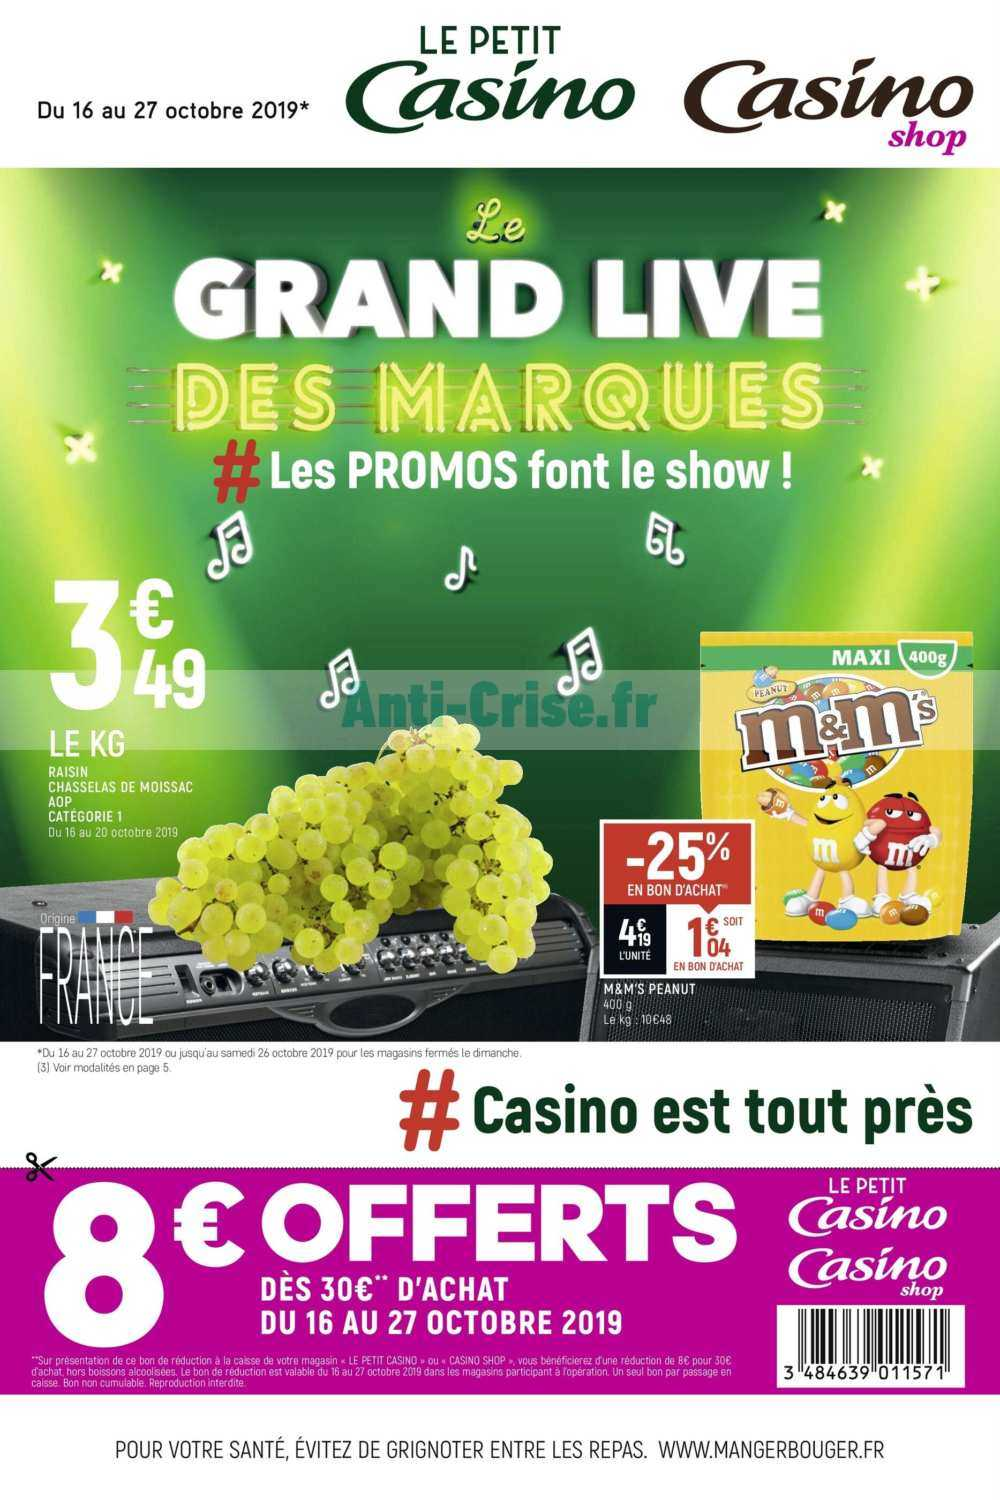 https://media.anti-crise.fr/2019/10/octobre2019casino-shop1610201927102019S0C0grand-Live-1-200x300.jpg